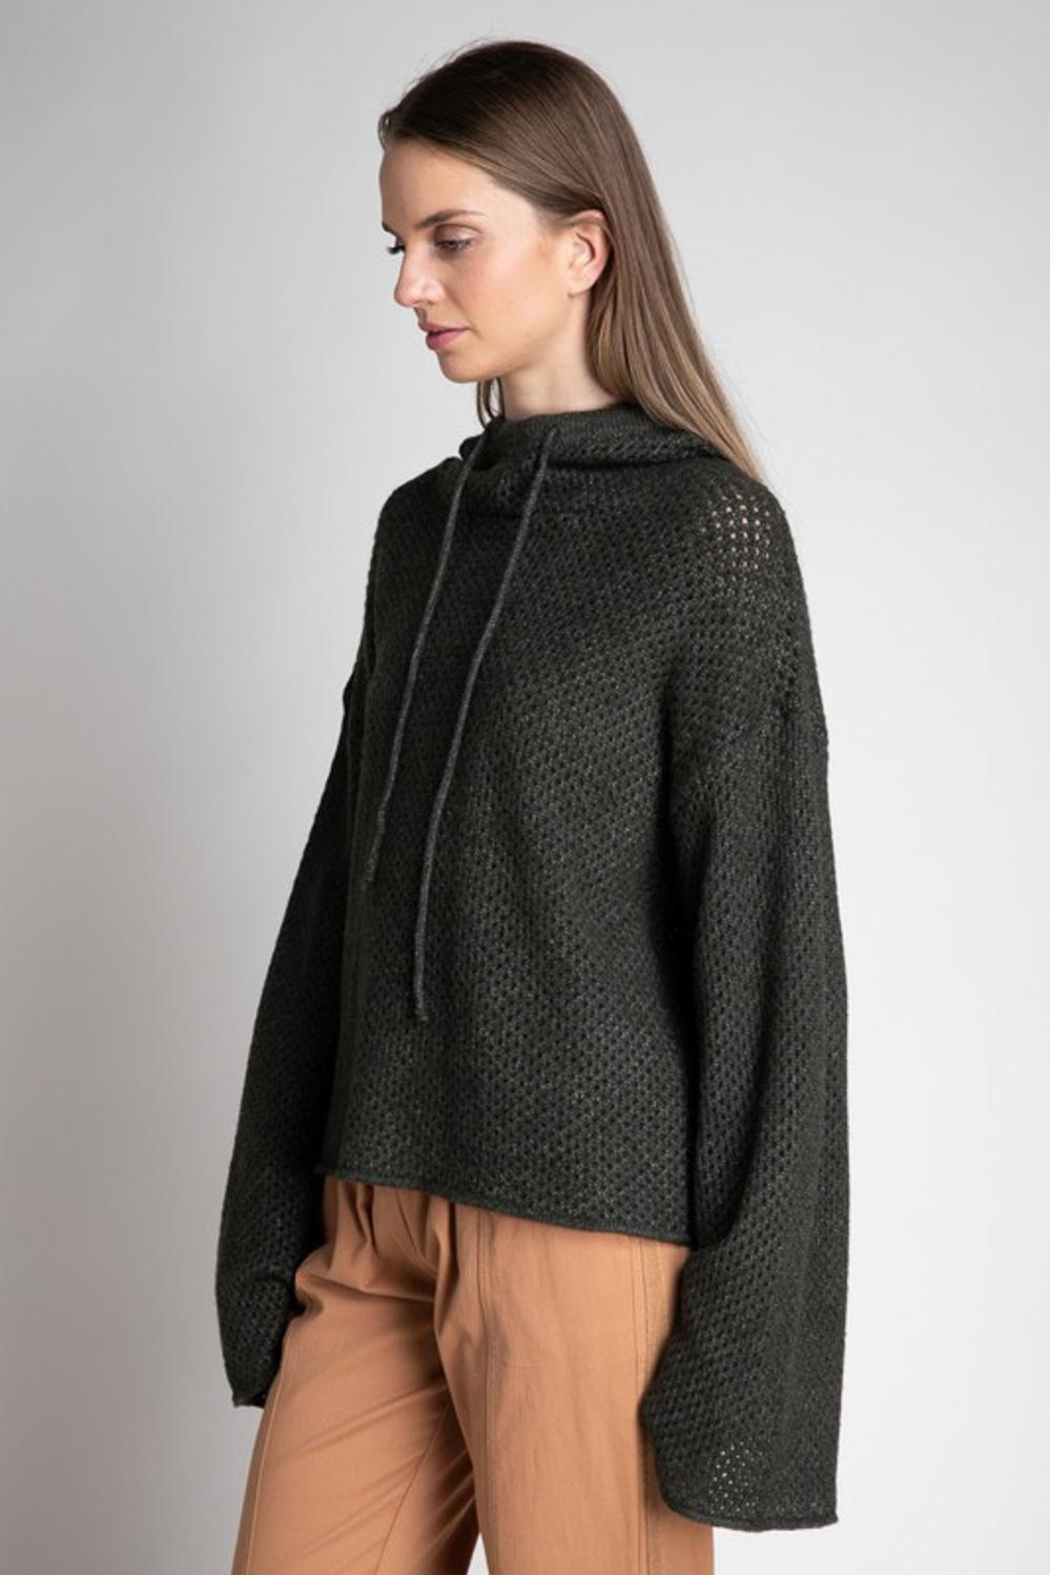 Grade and Gather Knit Olive Sweater - Main Image